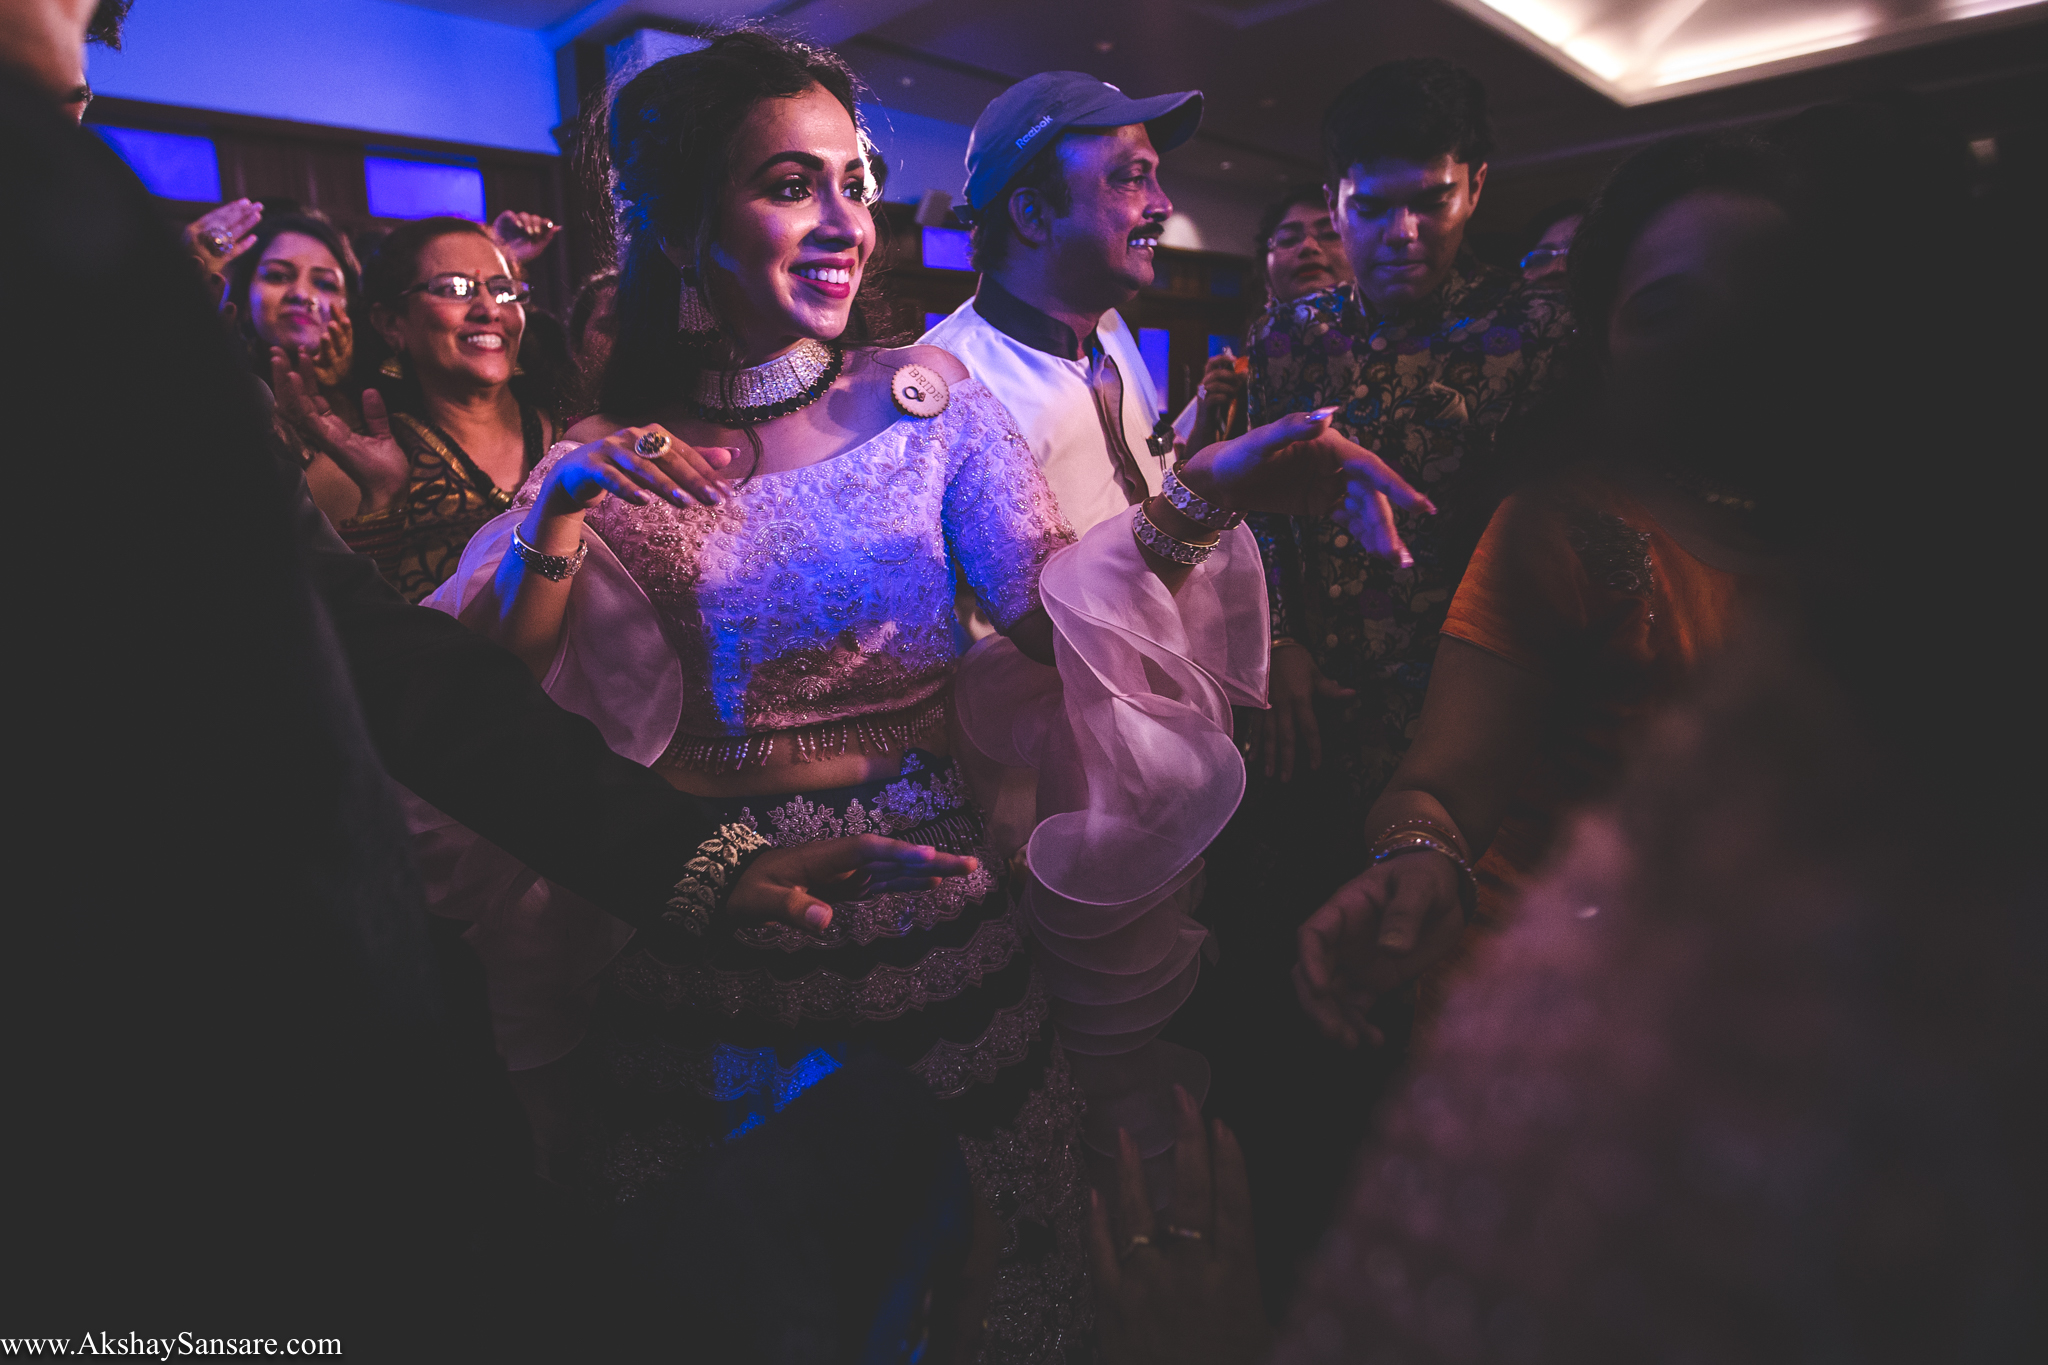 Nupur & Rohan wedding Akshay Sansare Photography best wedding photographer in mumbai India Candid(14).jpg